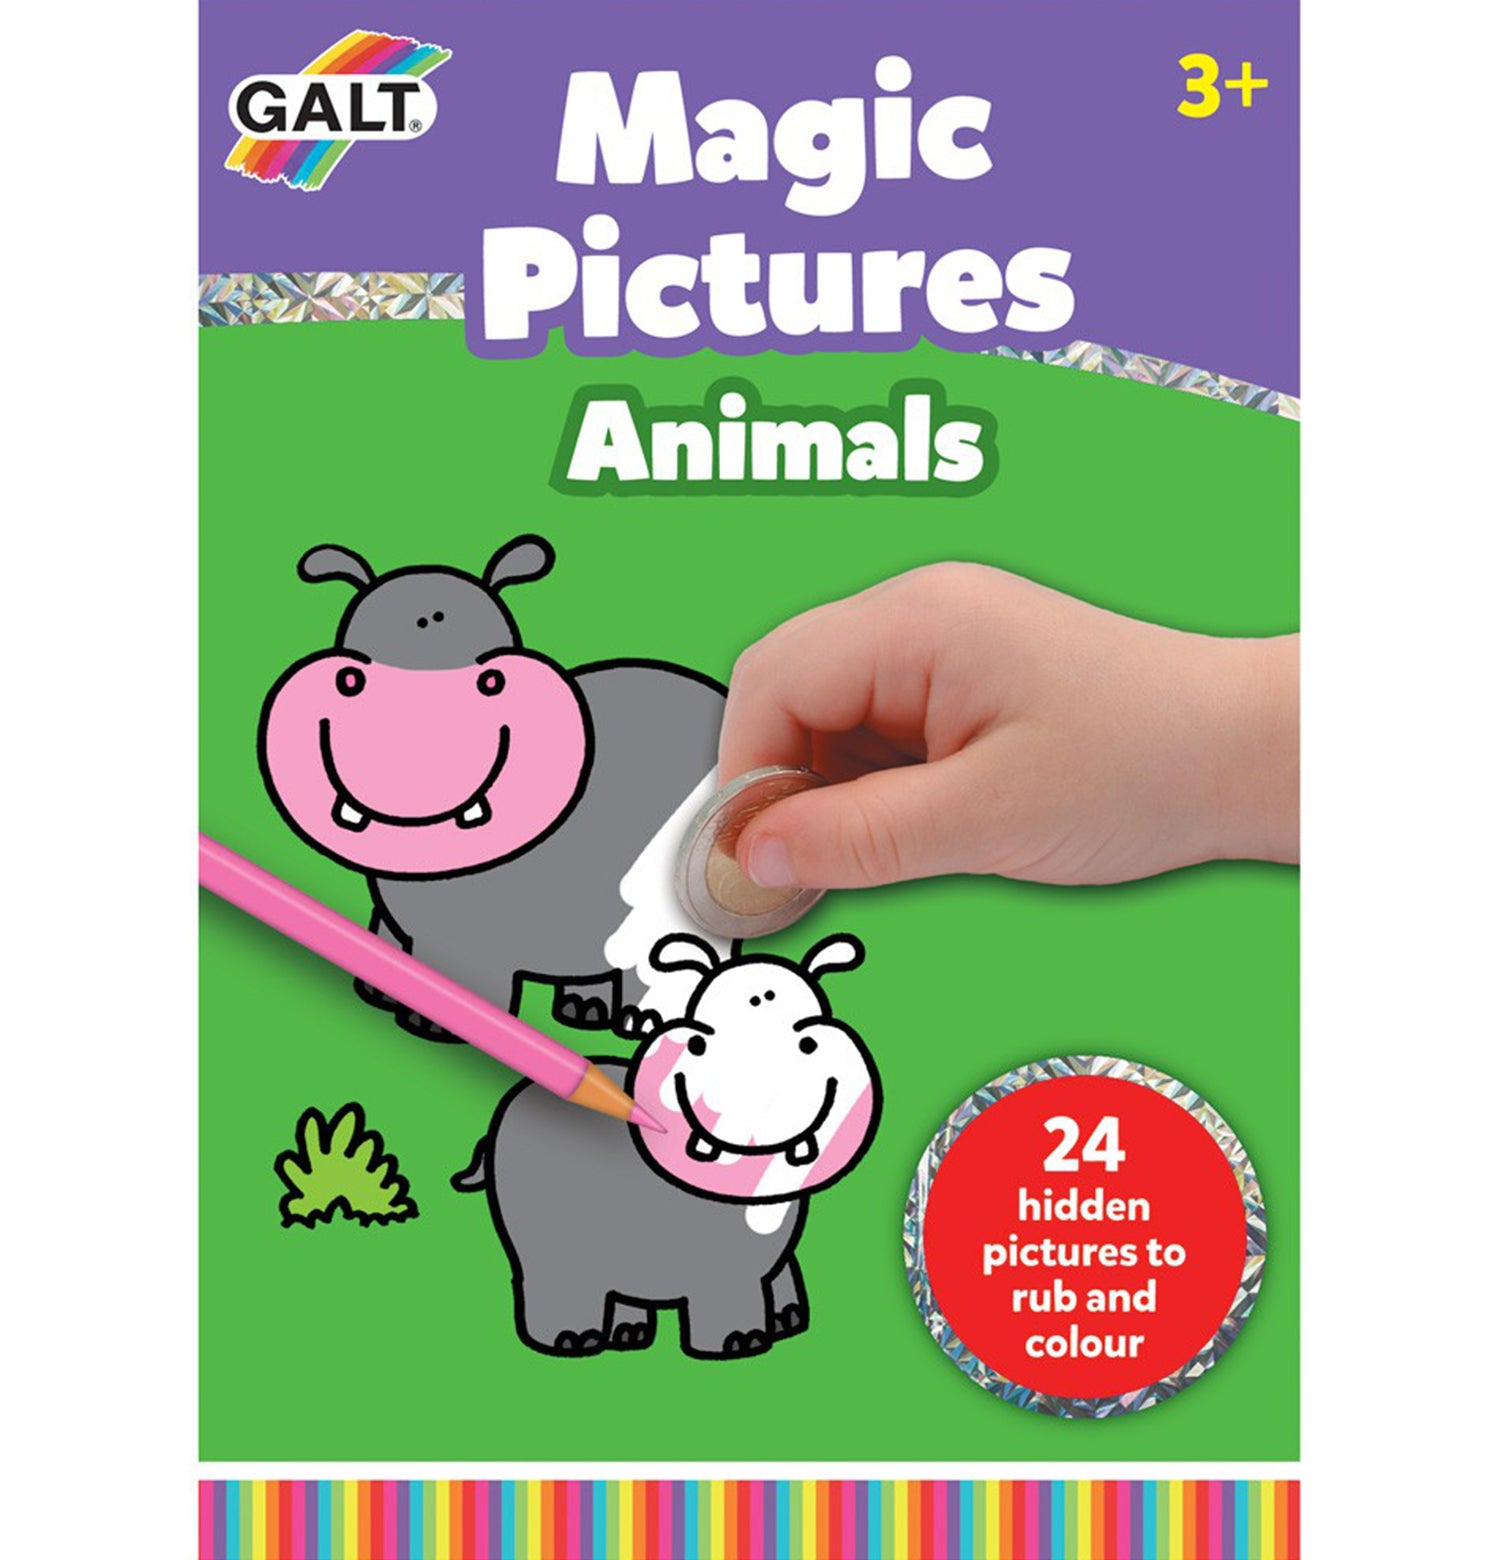 Magic Pictures Pad - Galt